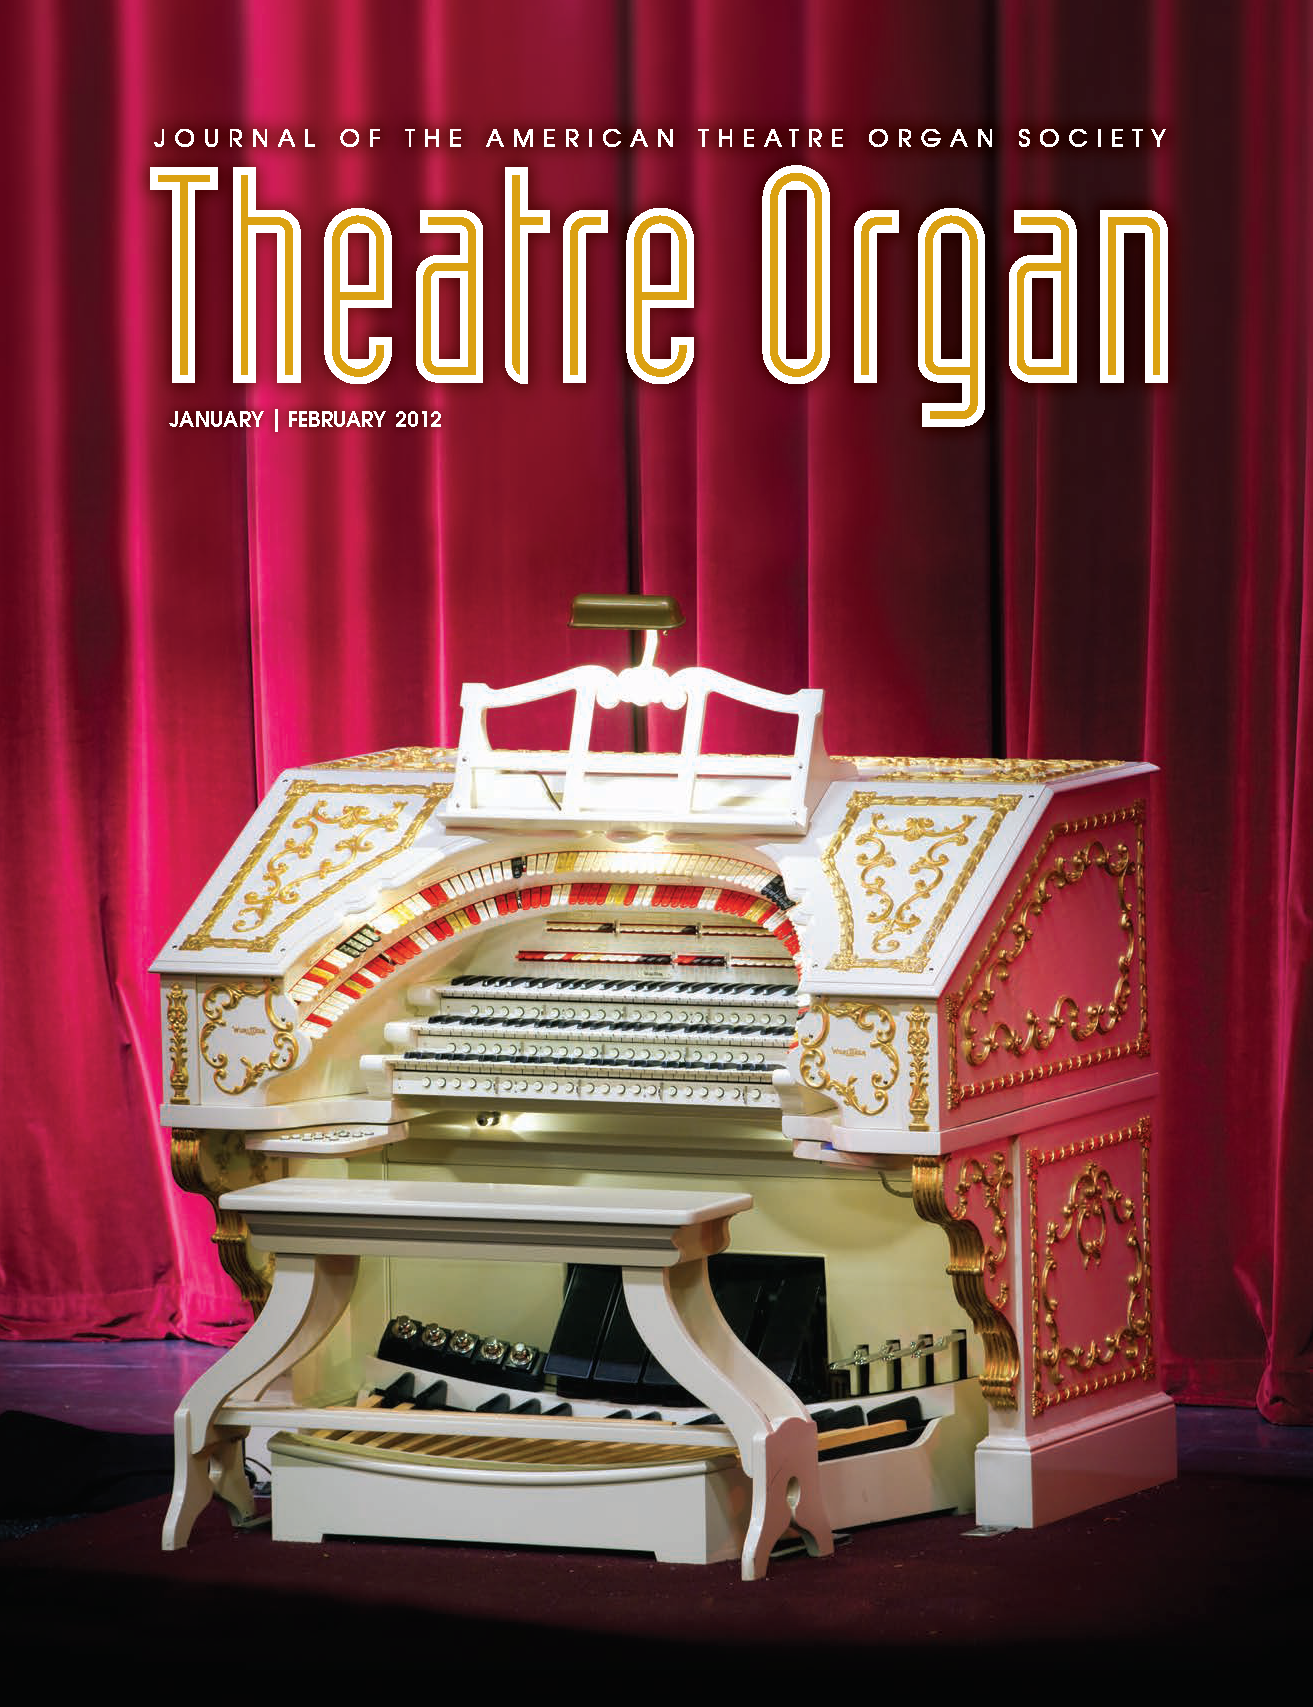 Theatre Organ, January - February 2012, Volume 54, Number 1